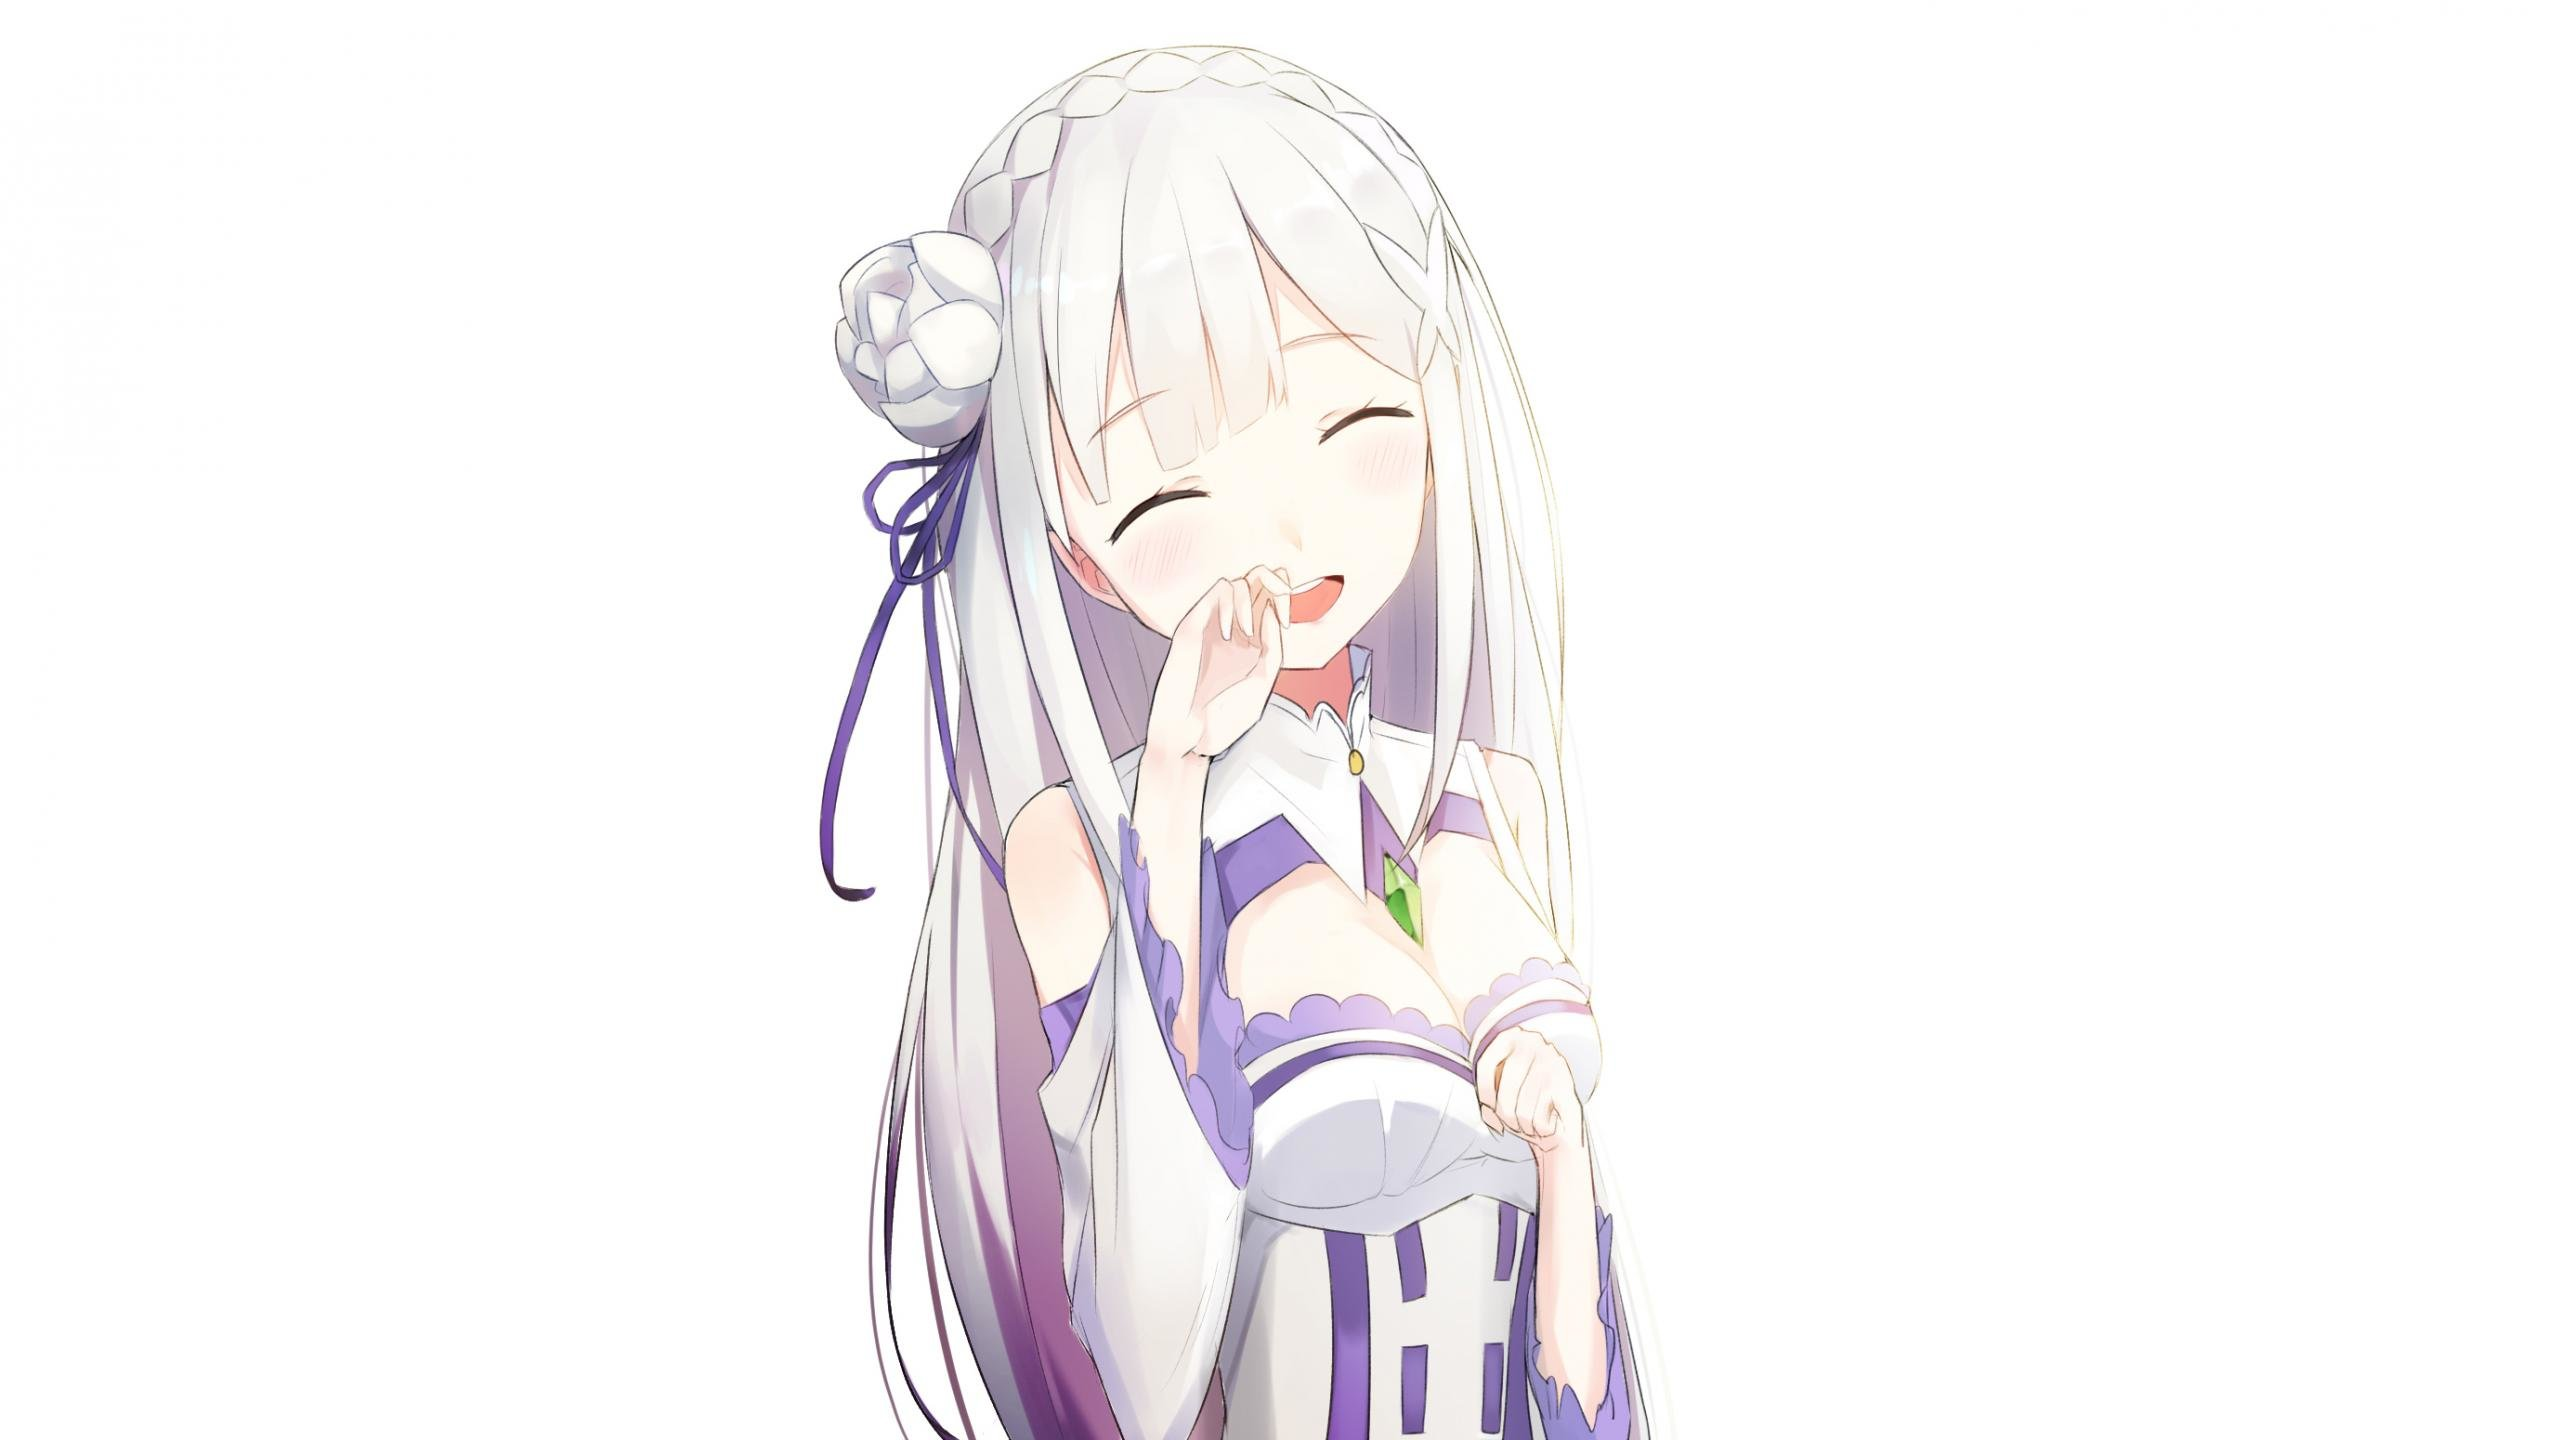 Awesome Emilia Re Zero Free Wallpaper Id 159230 For Hd 2560x1440